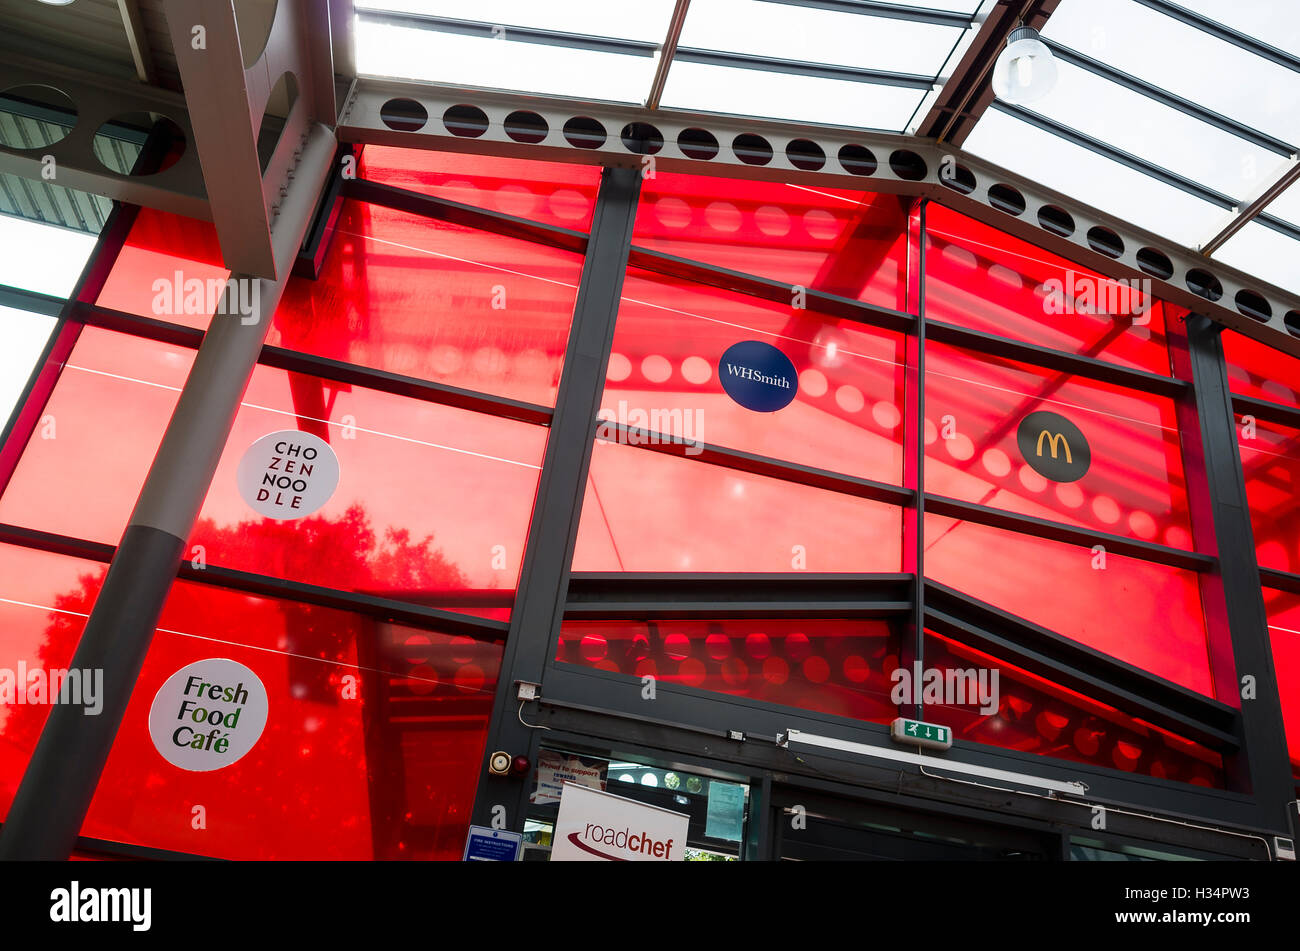 Red glass panels make a striking feature above the entrance to a Roadchef service station - Stock Image